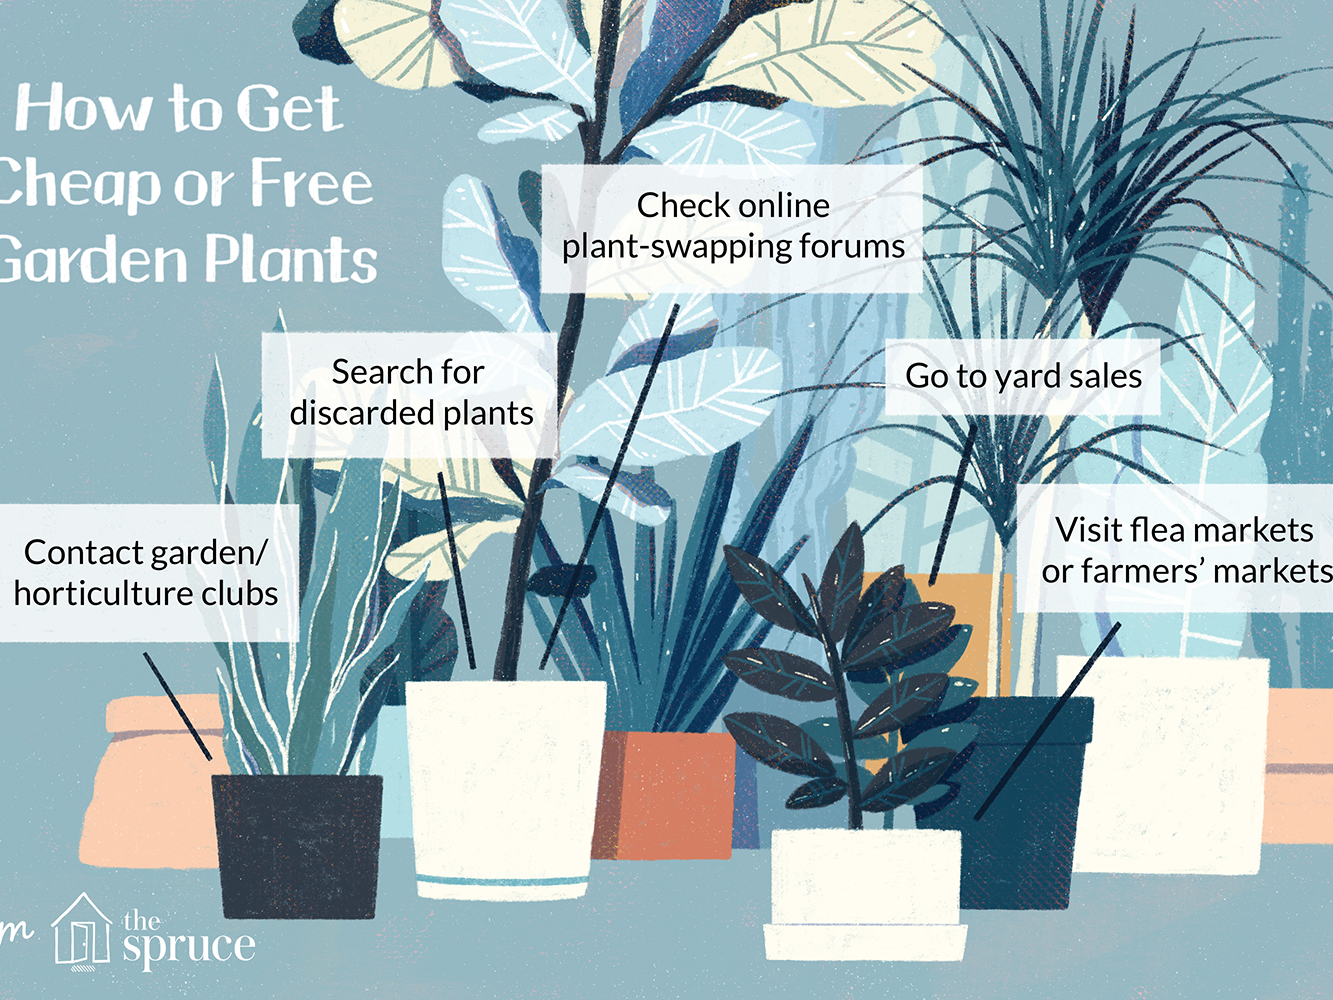 12 Ways To Find Free Or Garden Plants